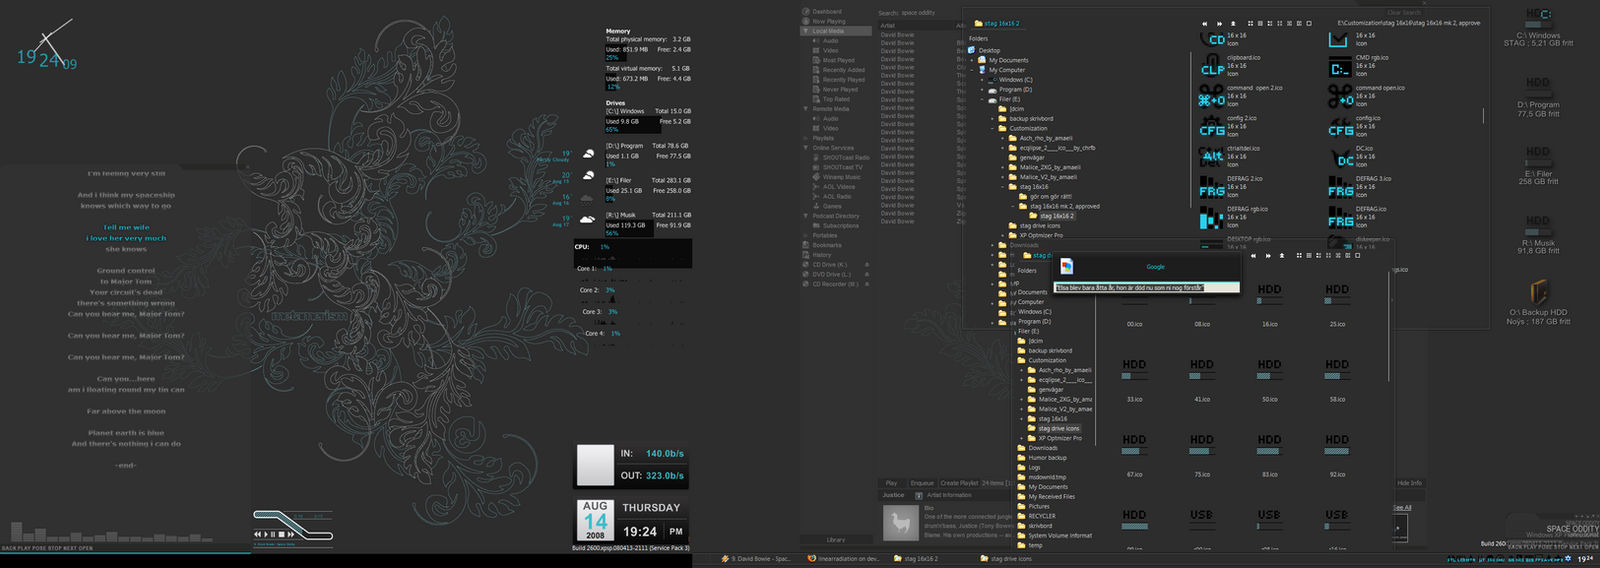 Real desktop WIP as of today by linearradiation